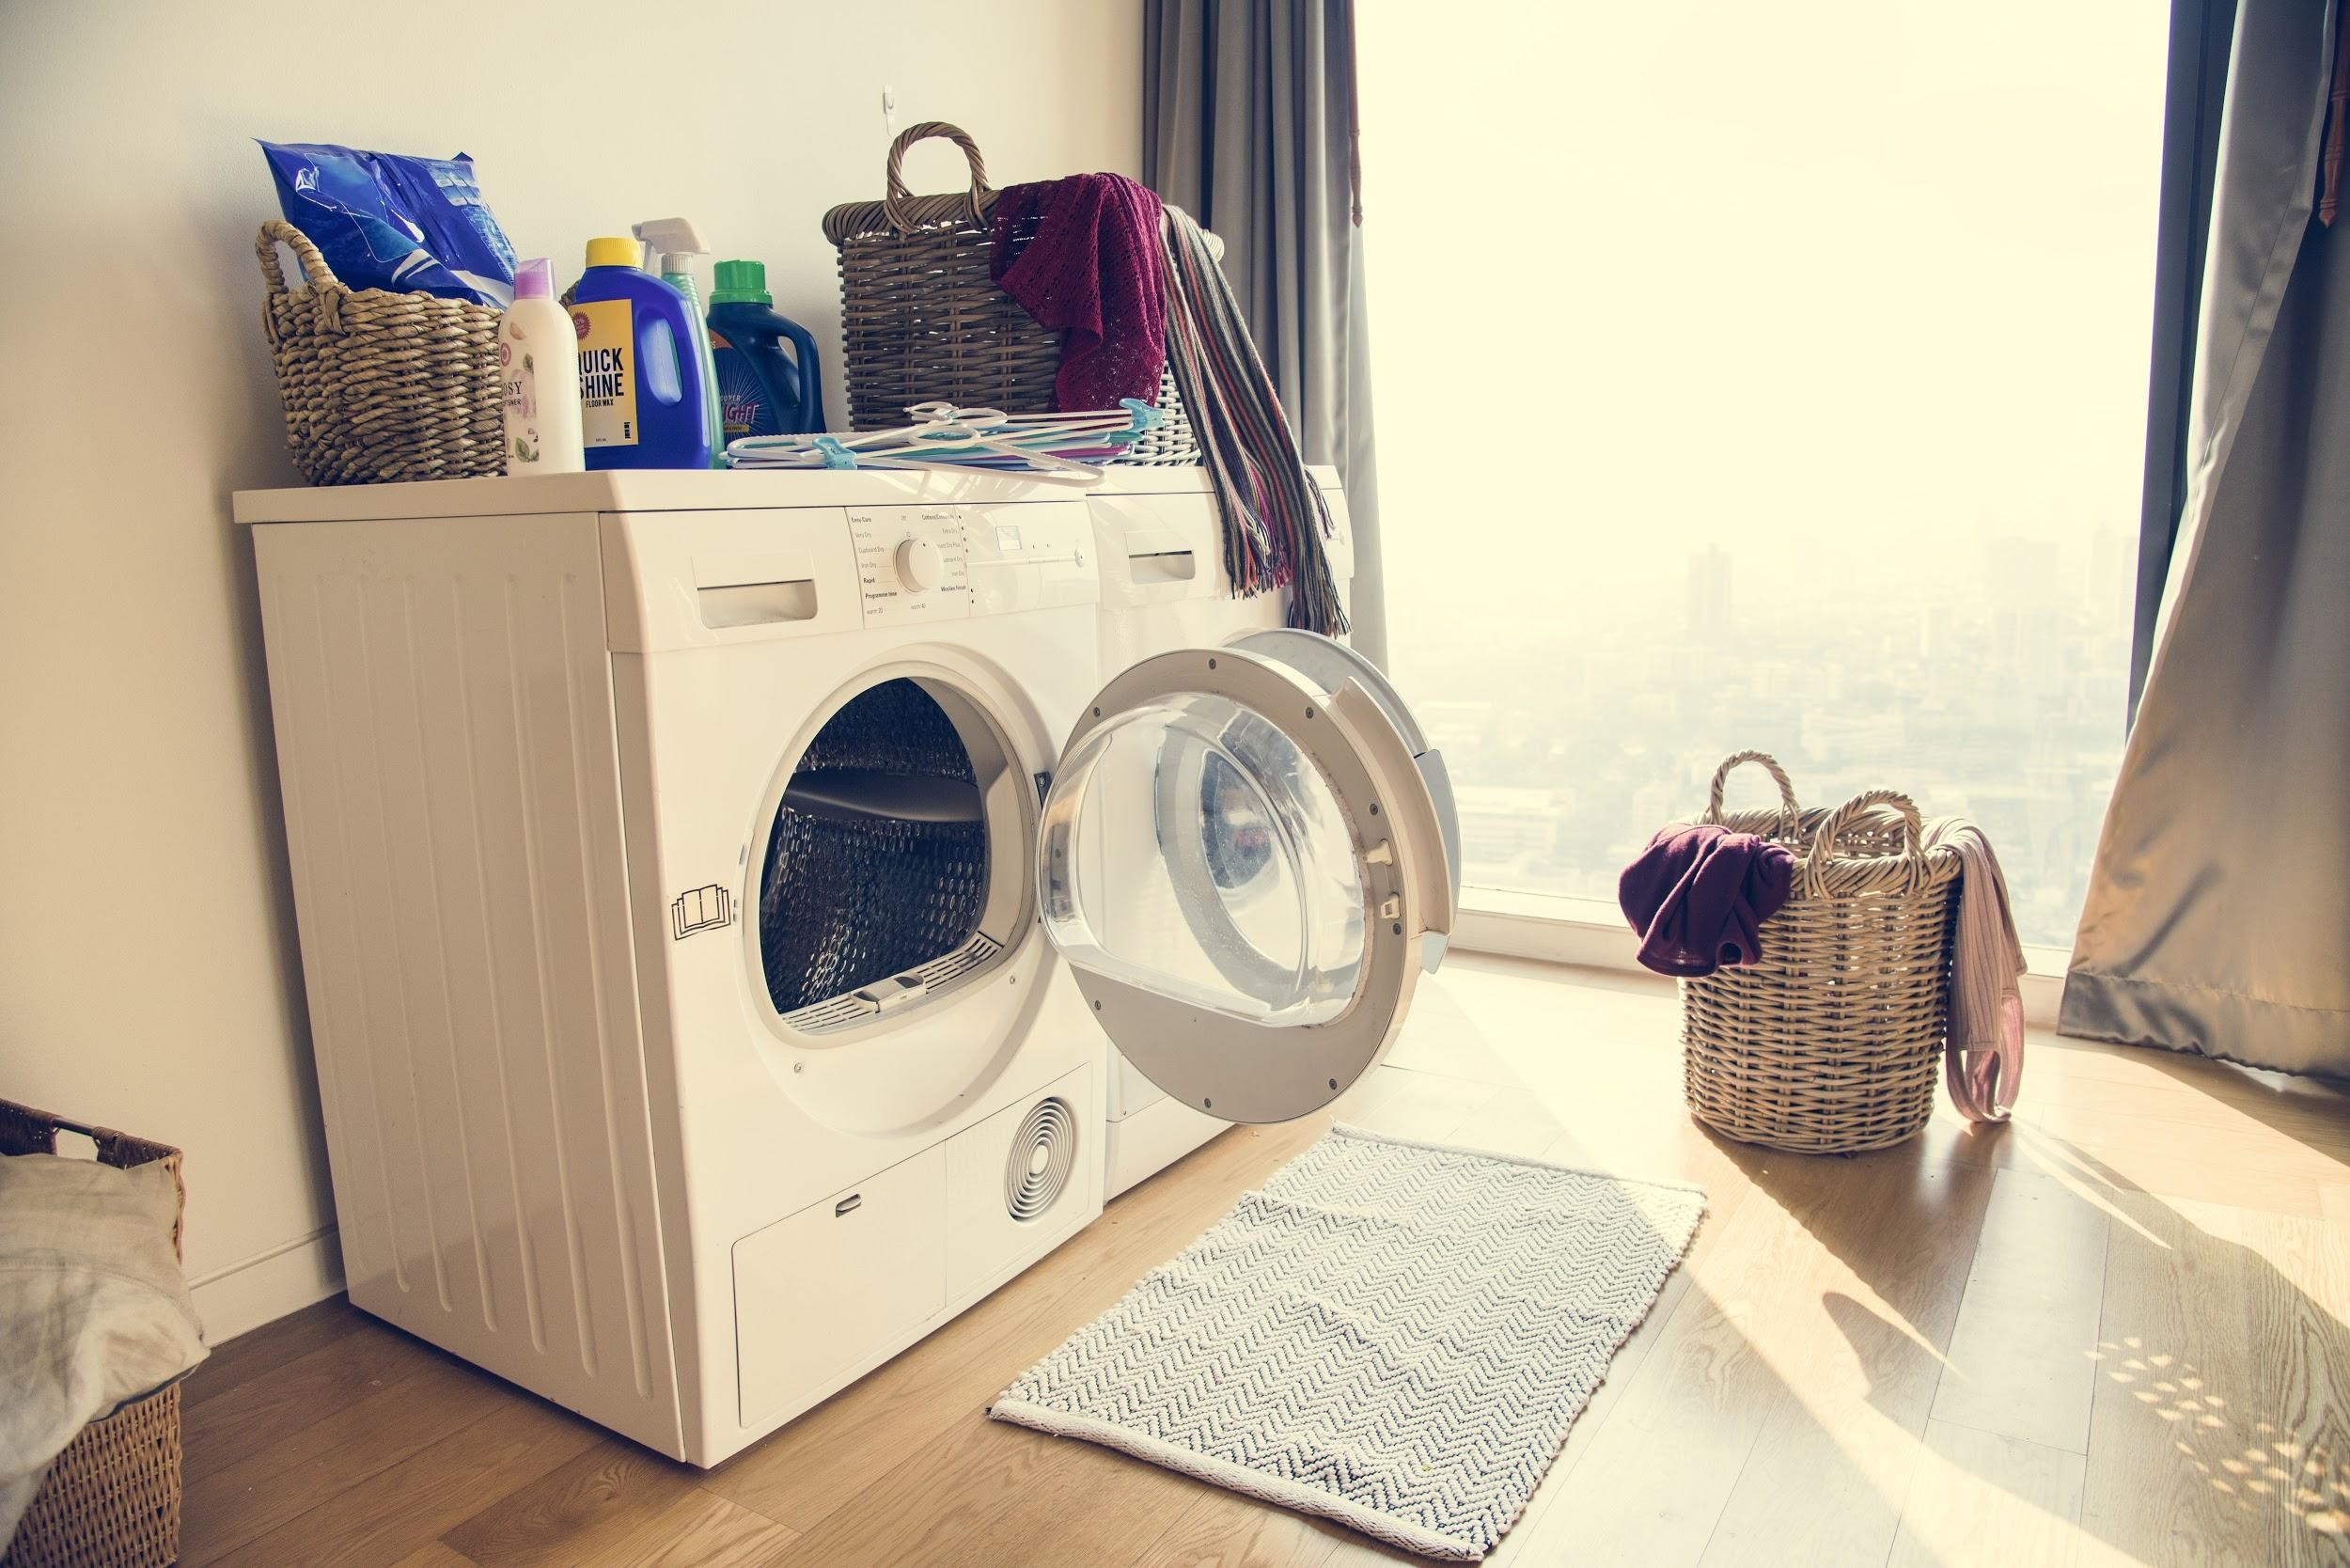 Steps To Find The Right Washing Machine For You